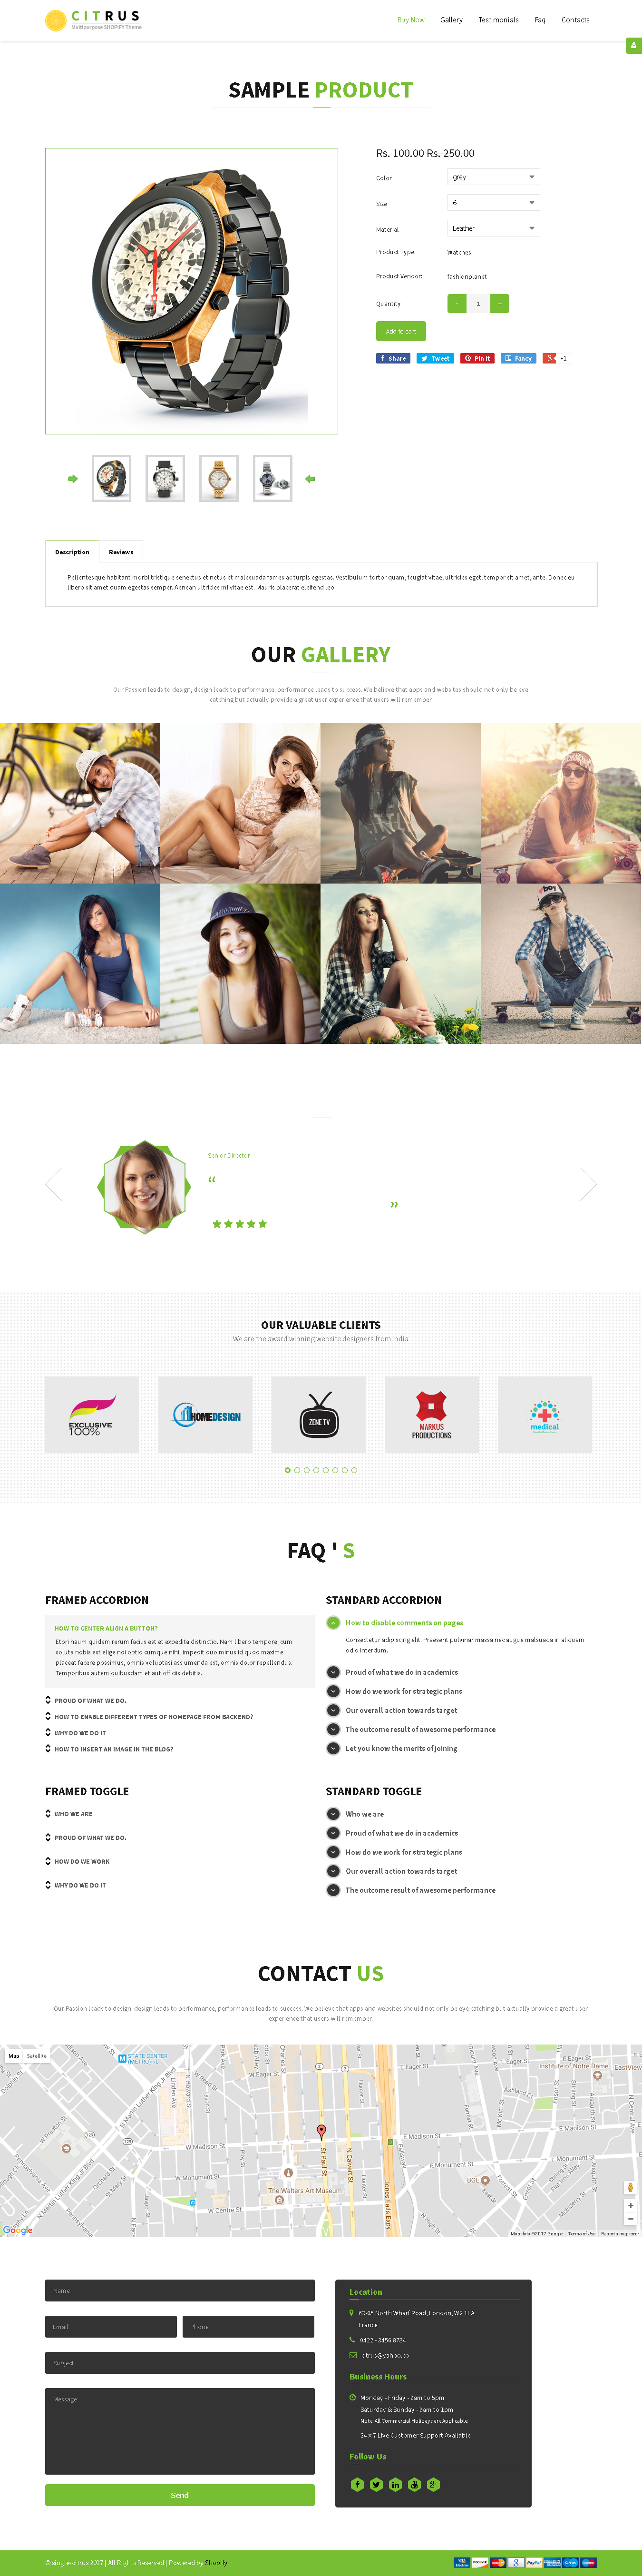 5 Best SHOPIFY Premium Themes Collection for Single Product Store 2017 - Citrus one-page parallax Shopify Theme